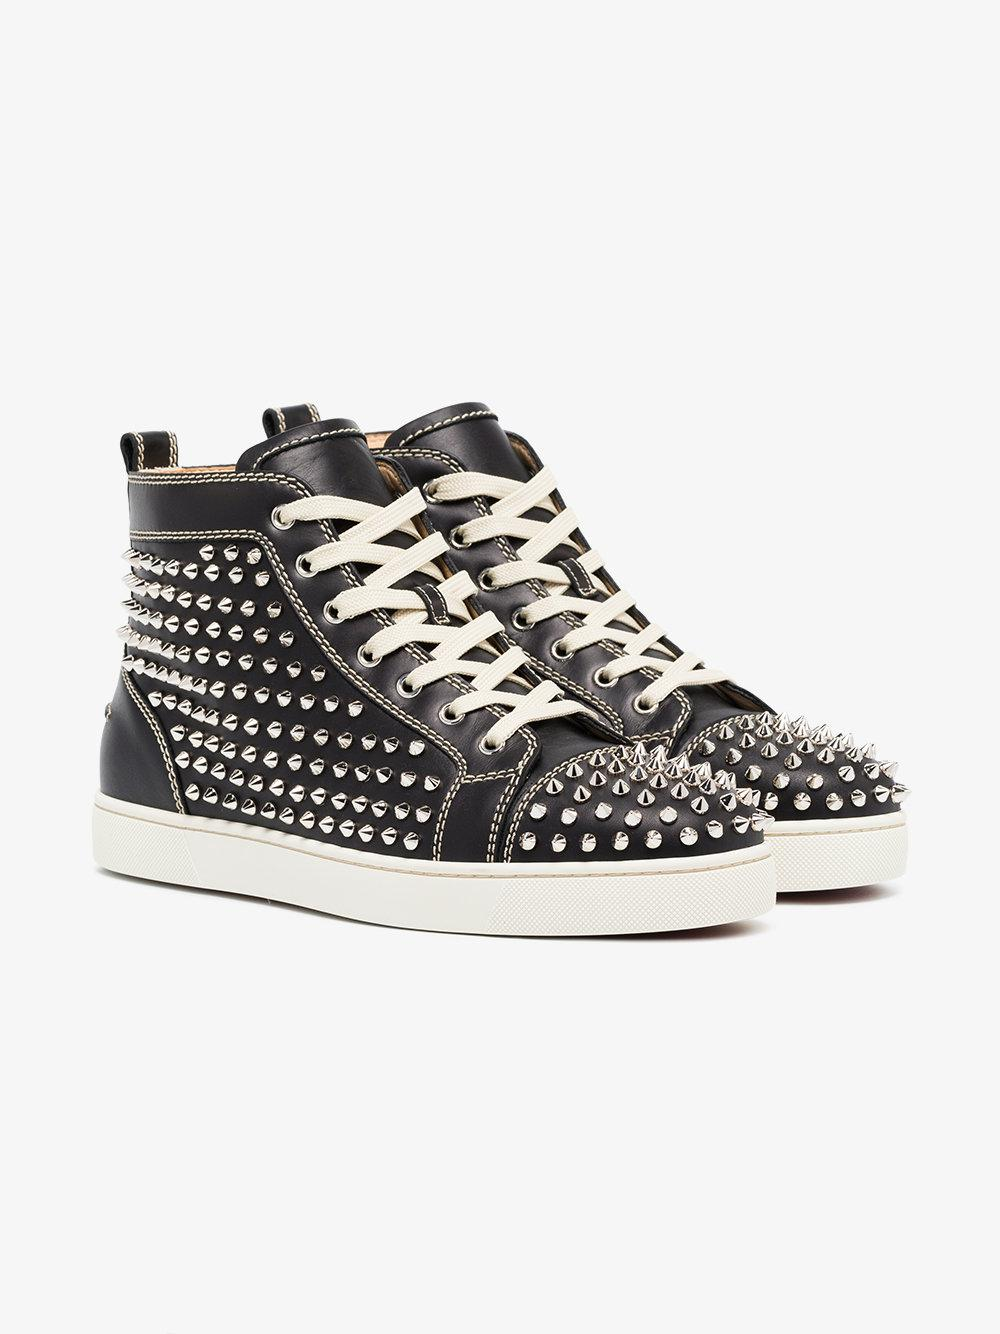 04d9fb77eebc Lyst - Christian Louboutin Louis Flat Spike High Top Sneaker in ...